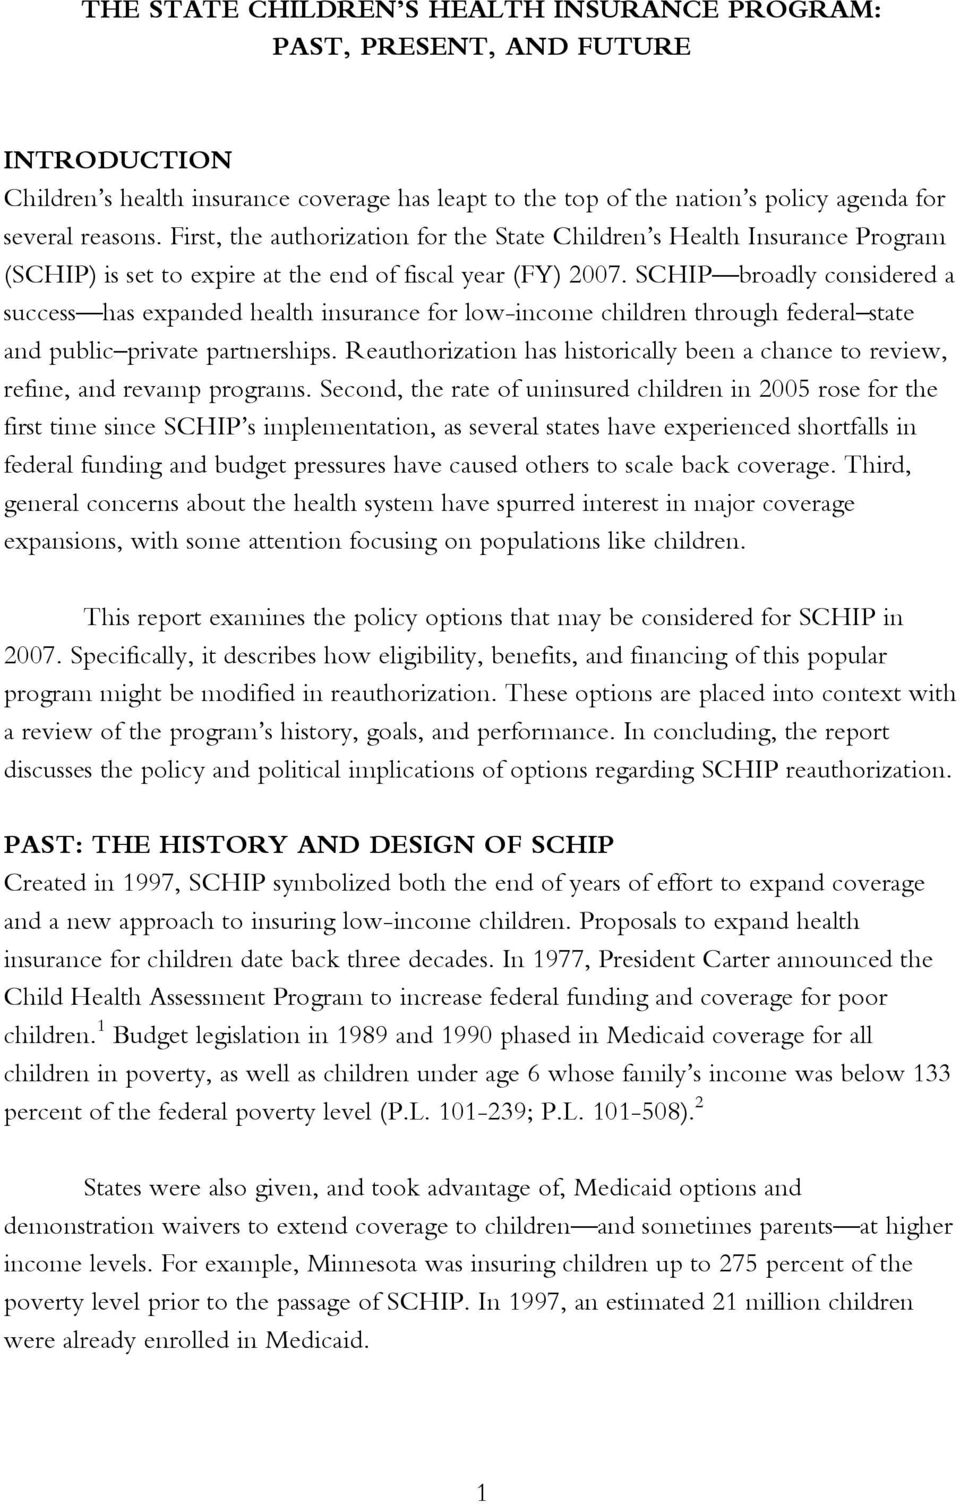 SCHIP broadly considered a success has expanded health insurance for low-income children through federal state and public private partnerships.